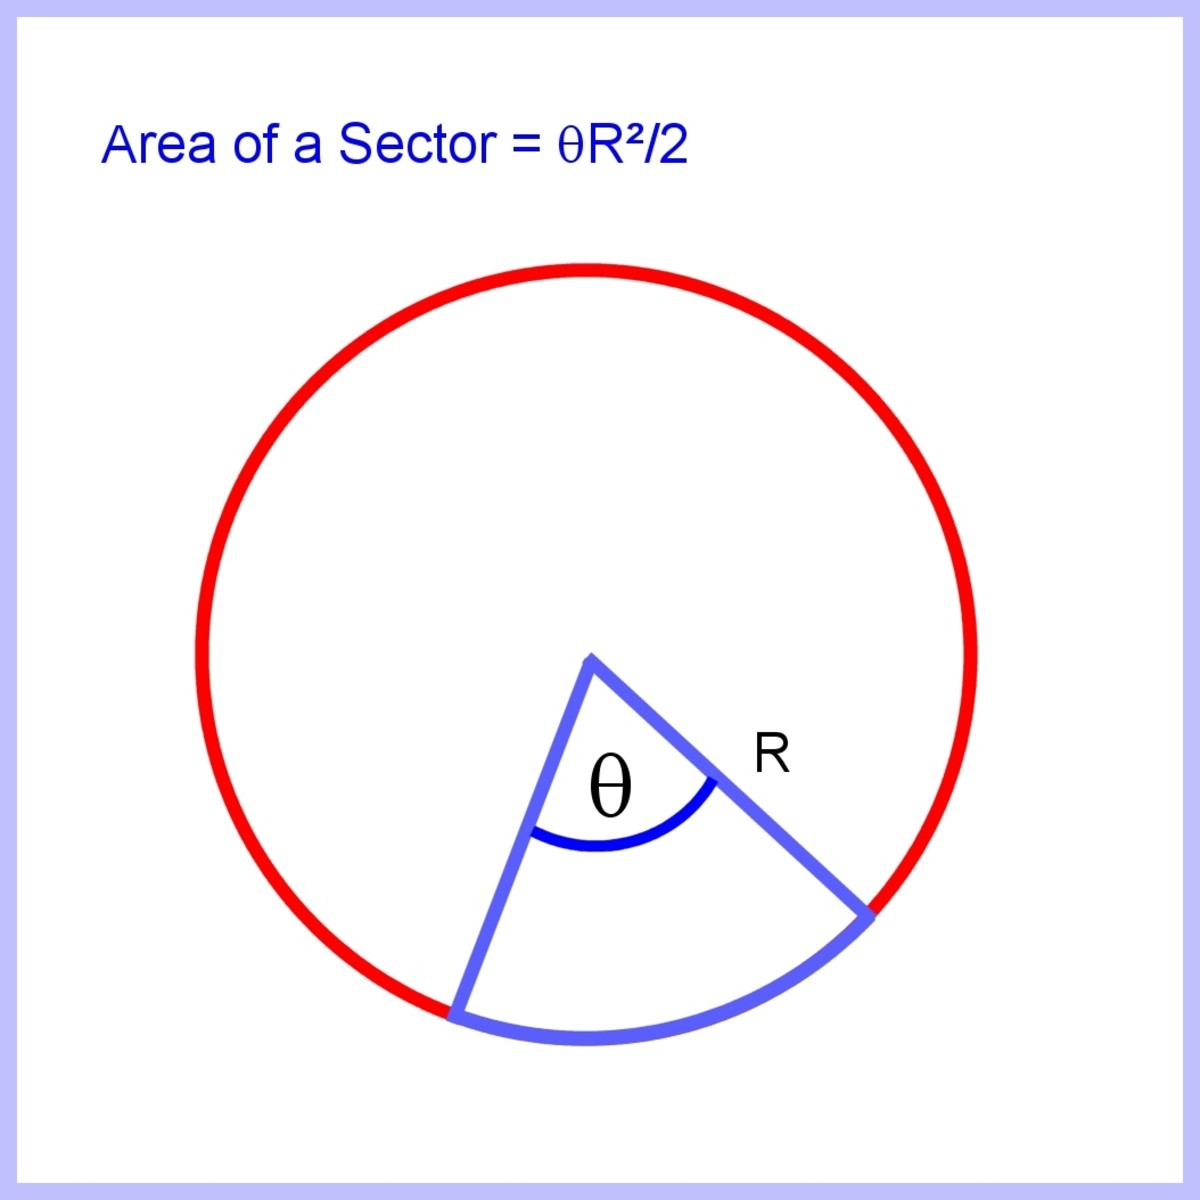 Area of a sector of a circle knowing the angle θ  in radians